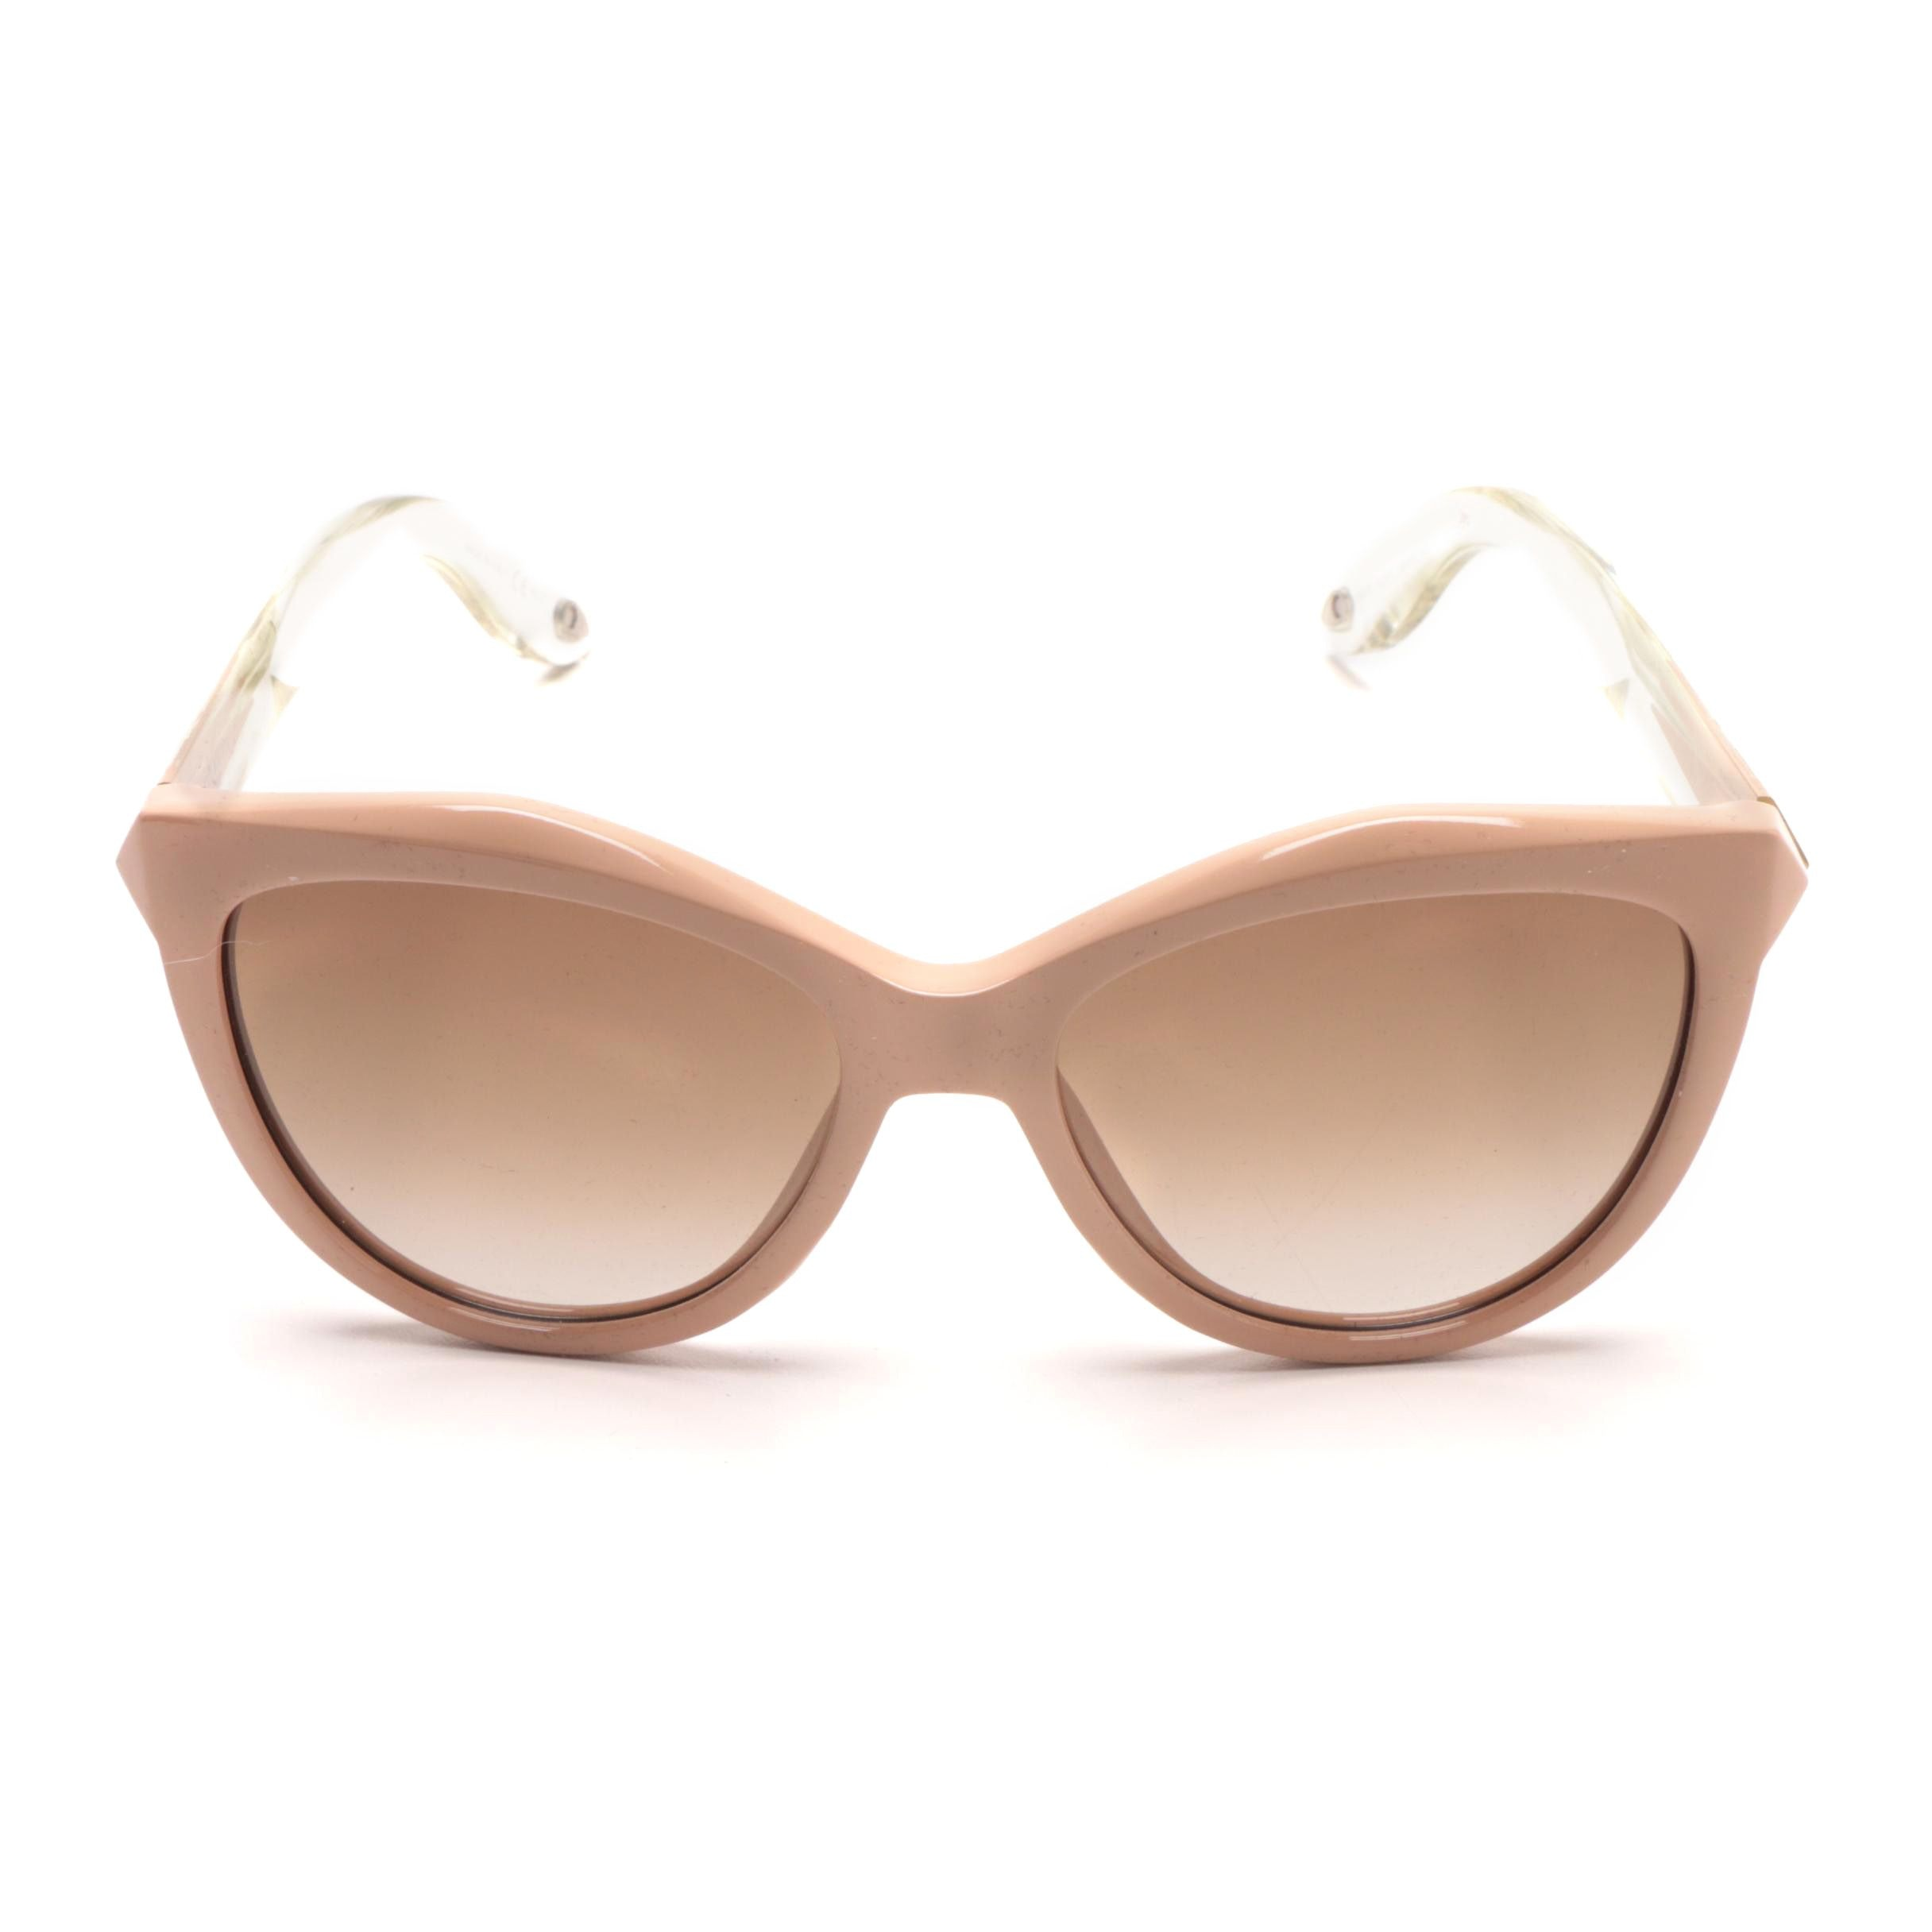 Givency of Paris Sunglasses